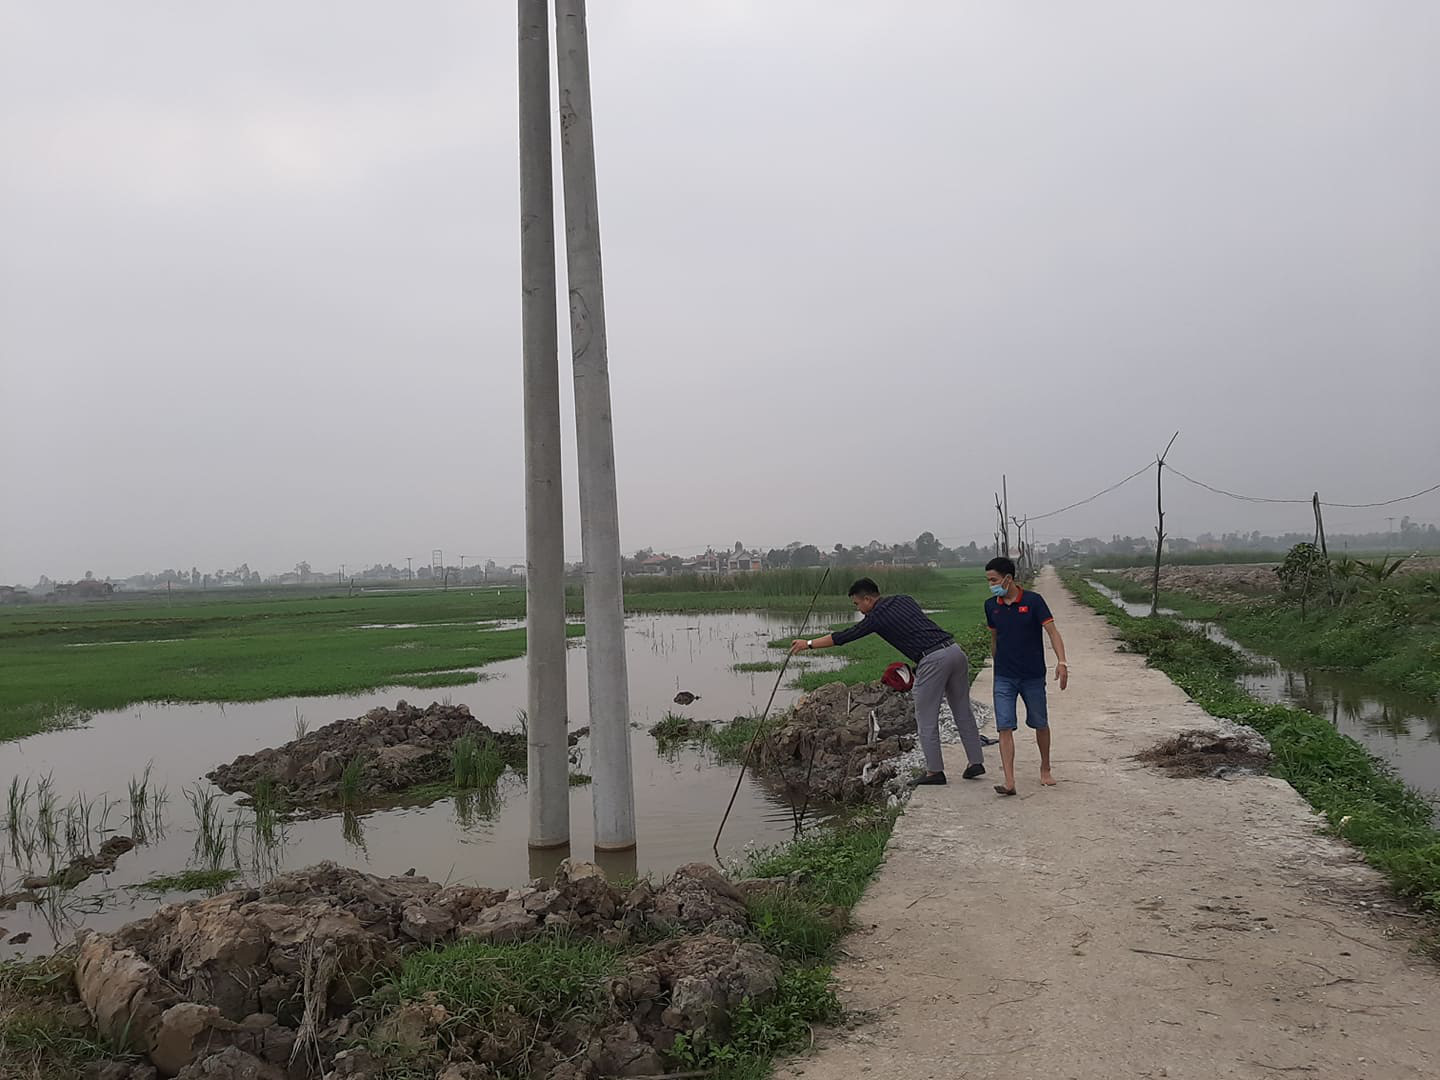 Vietnamese siblings drown after falling into pit at utility pole construction site